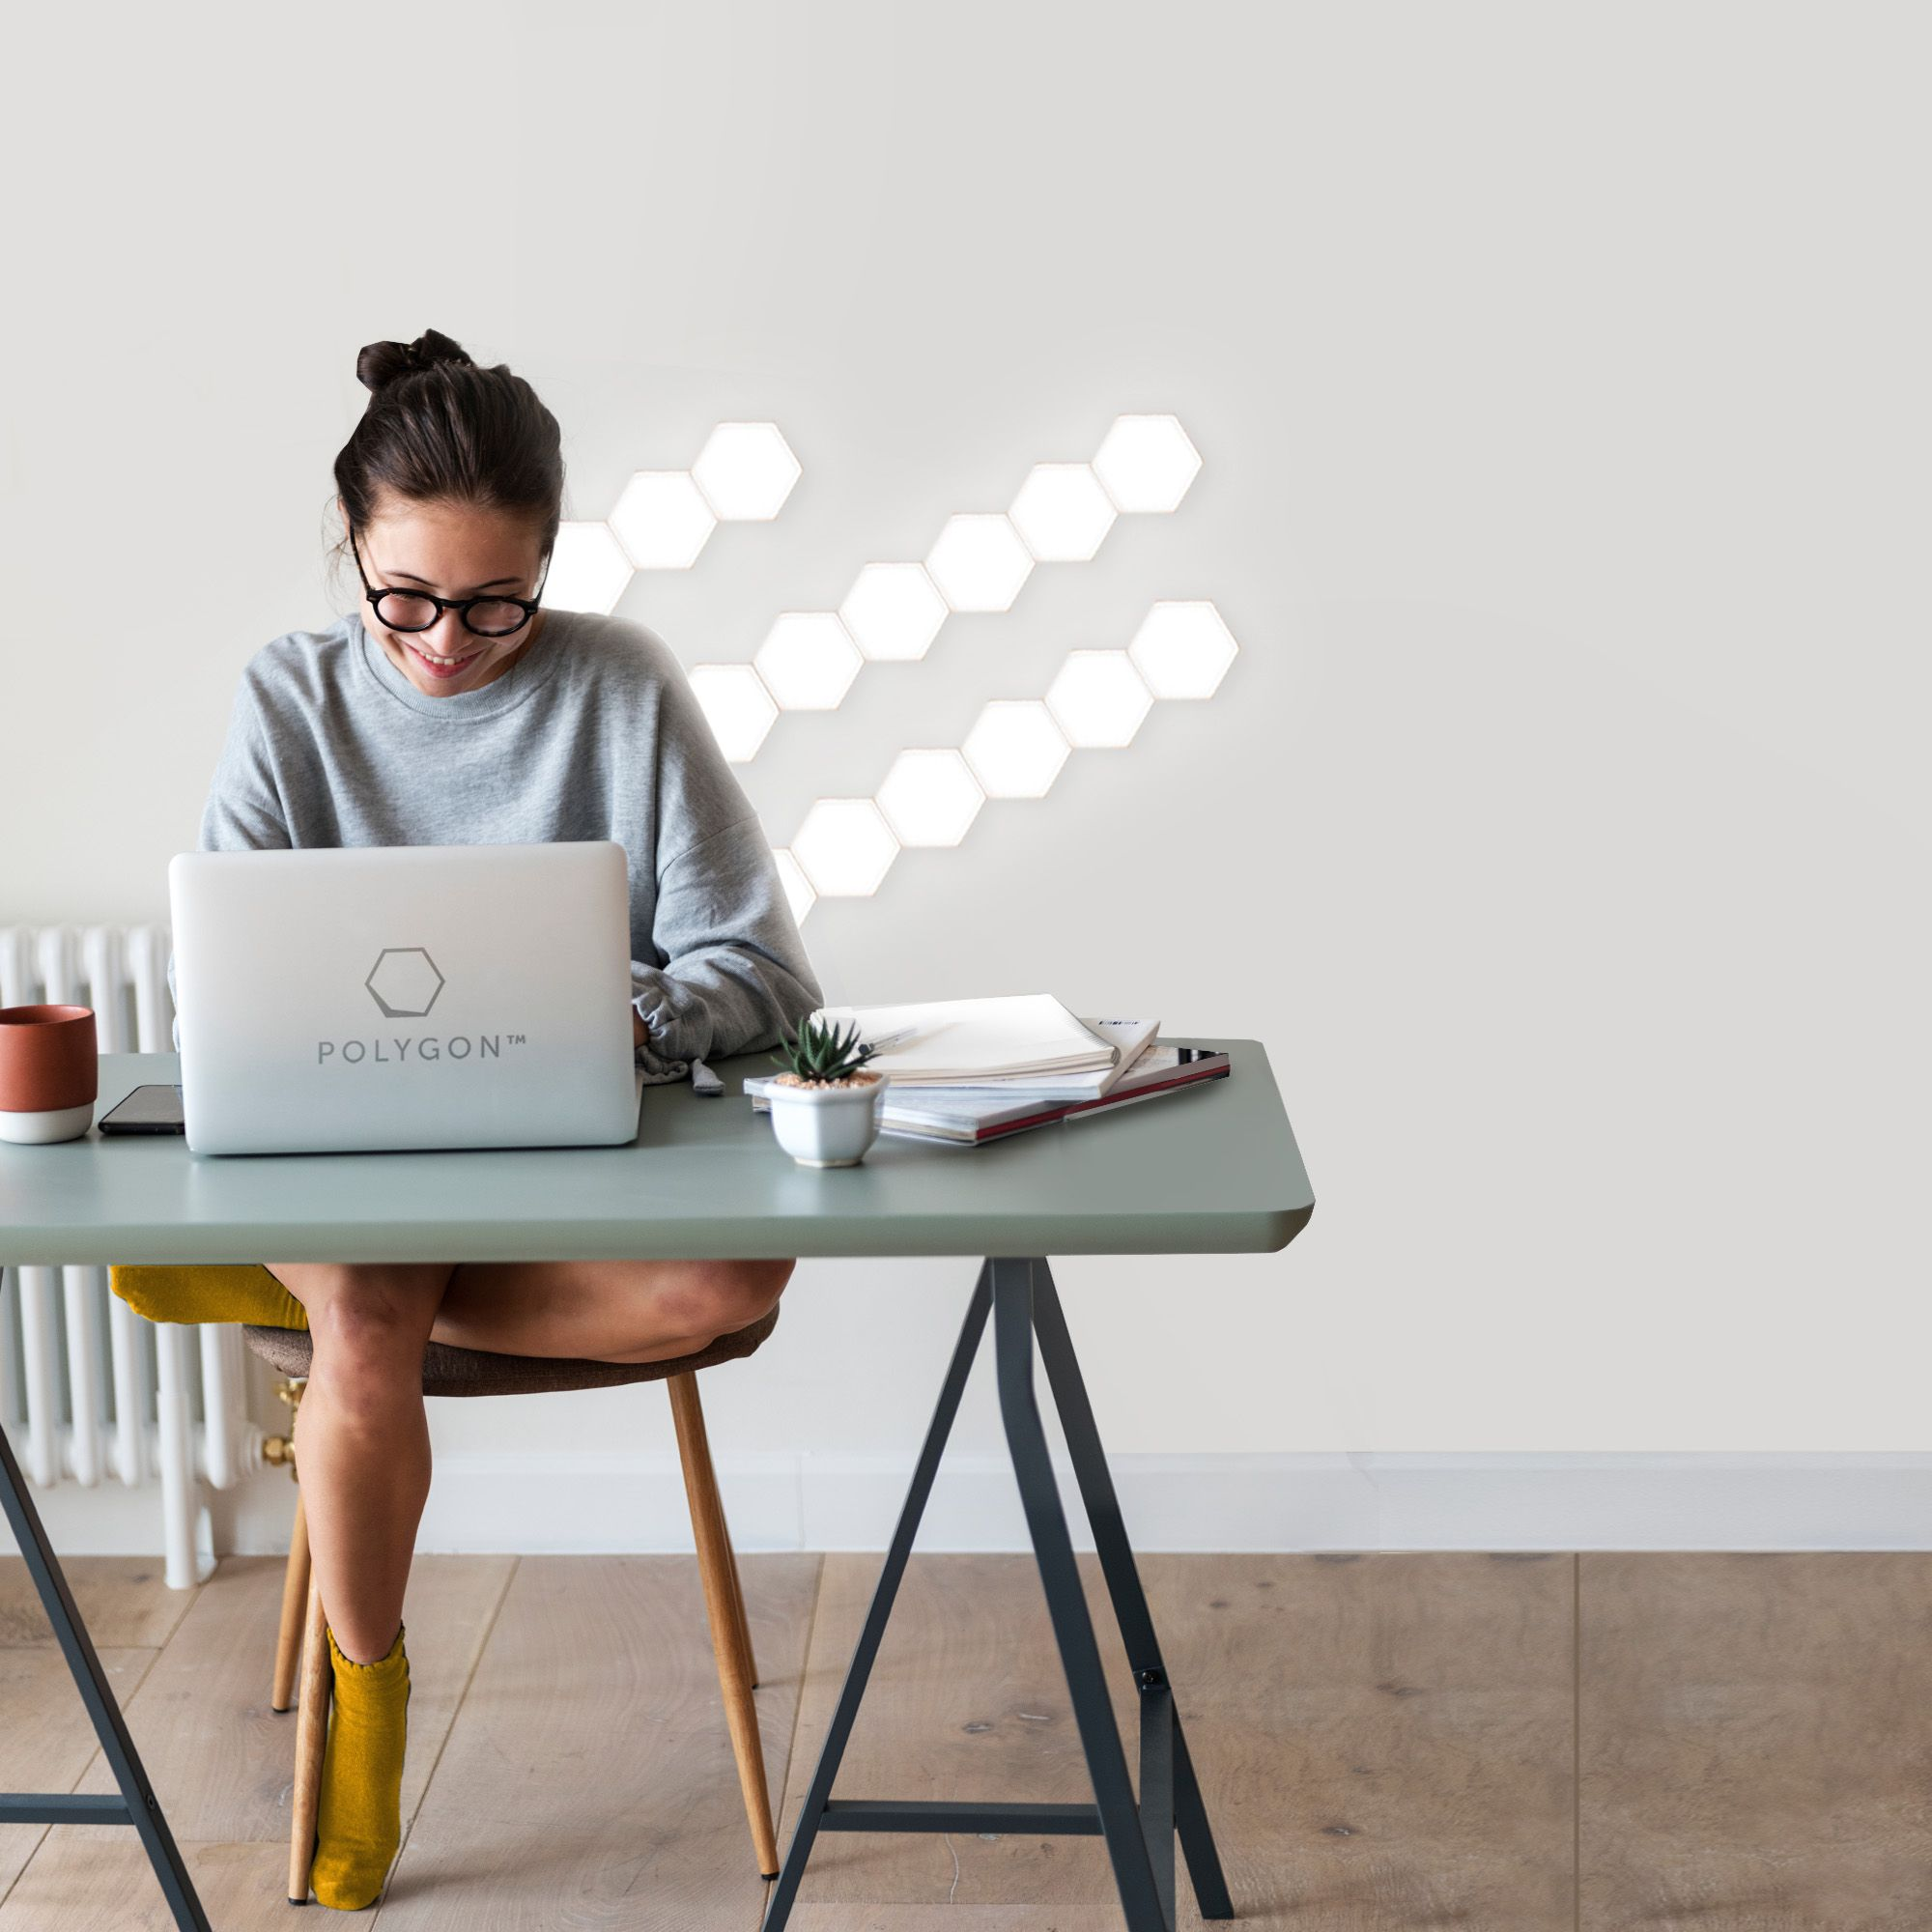 Woman Working At Desk On Laptop With Polygon Lights In The Background Lights Magnetic Tiles Polygon